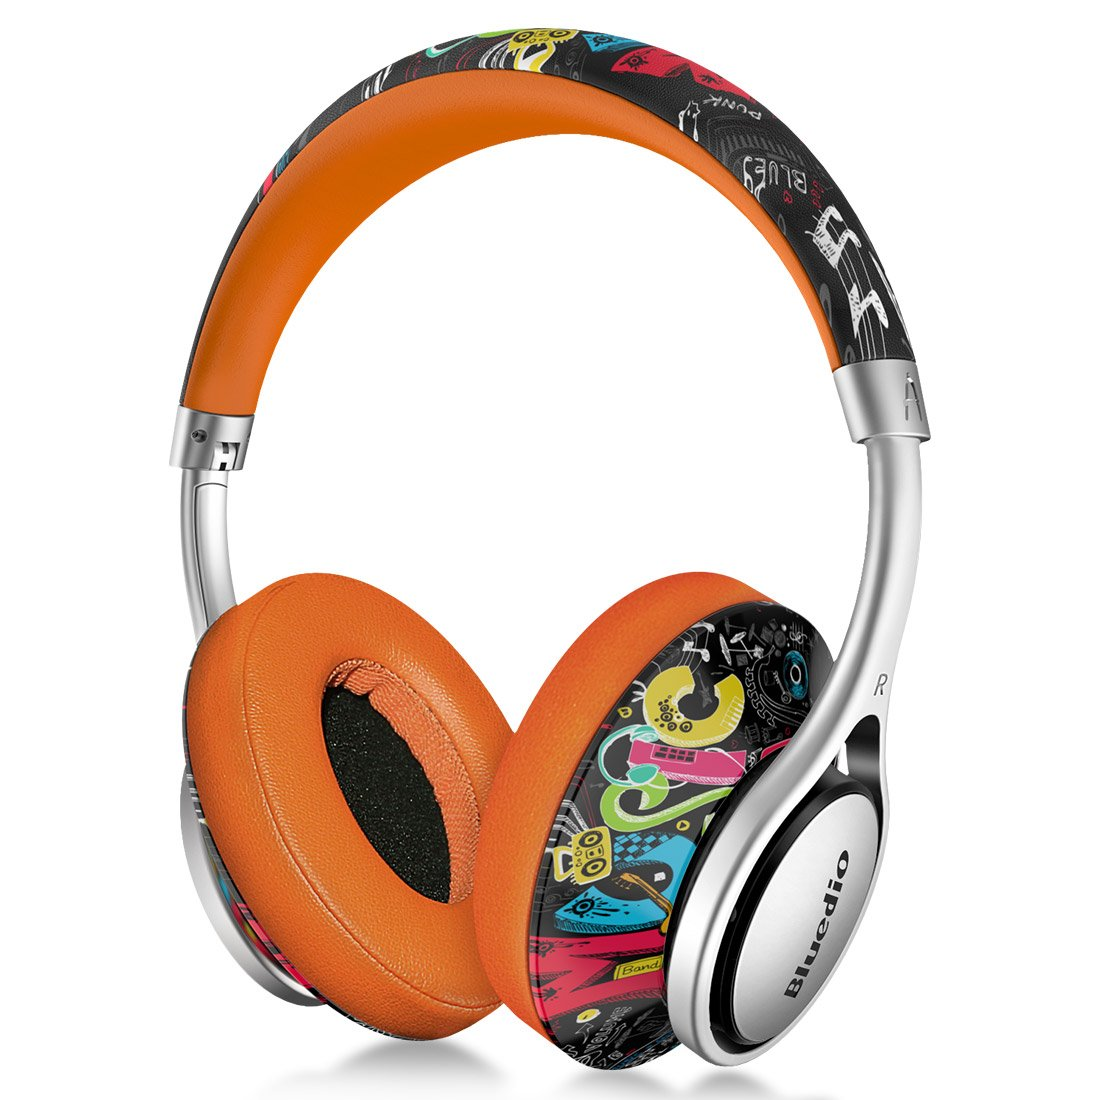 Amazon Com Bluedio A2 Air Bluetooth Headphones Over Ear With Carring Case 3d Stereo Lightweight Stylish Wireless Headset With Microphone Foldable Fashionable Surround Sound For Pc Cell Phones Doodle Electronics